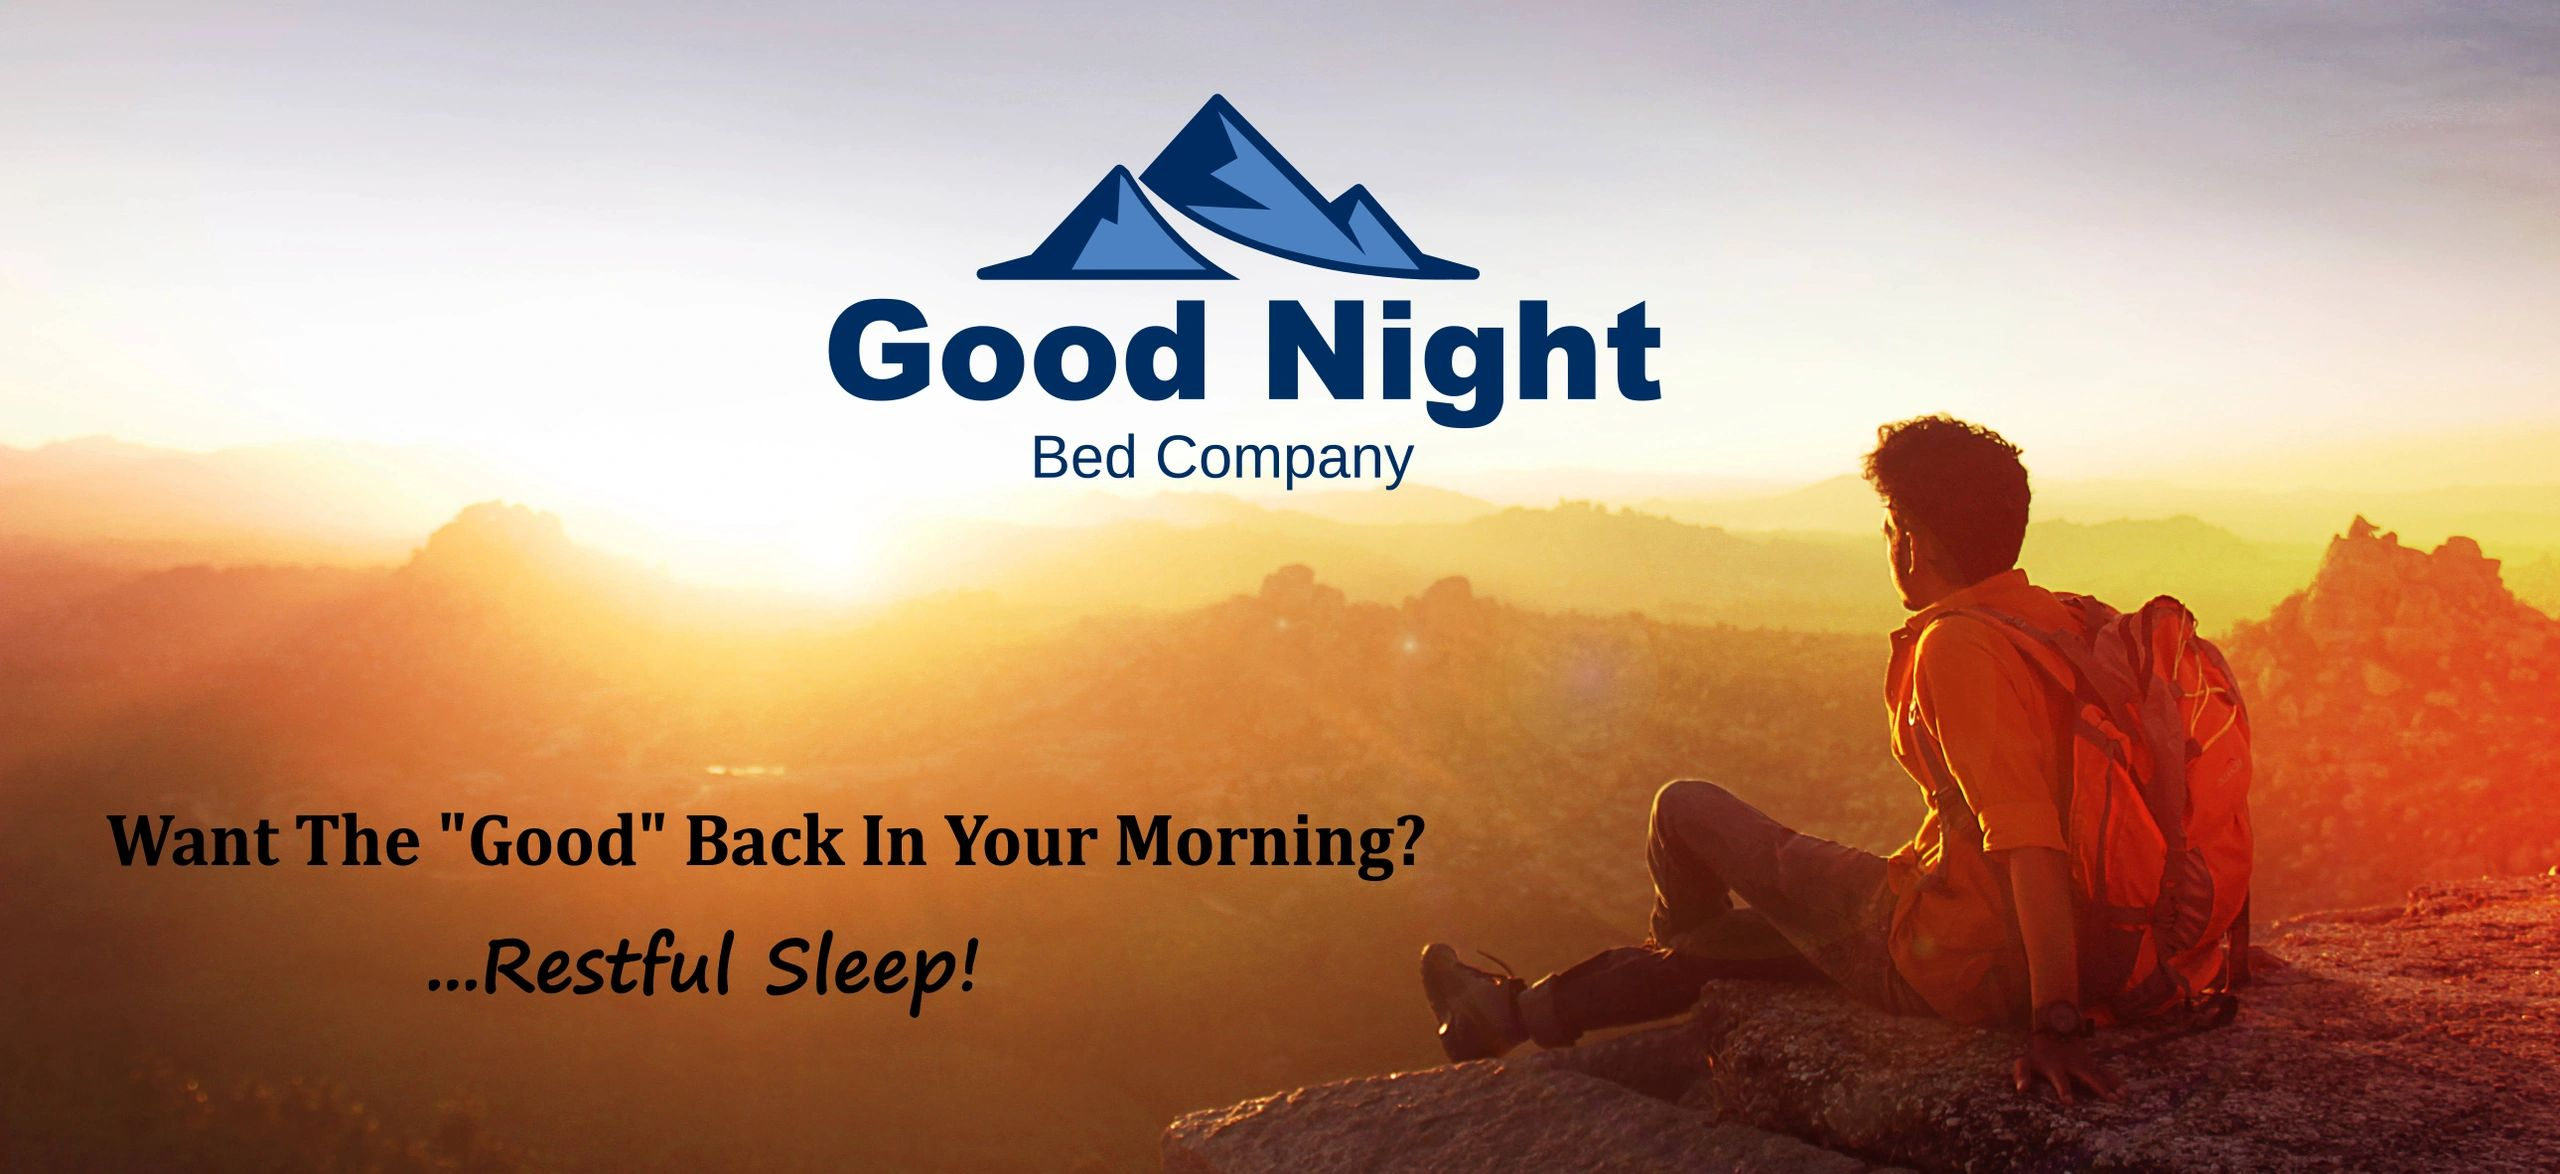 Products | Good Night Bed Company